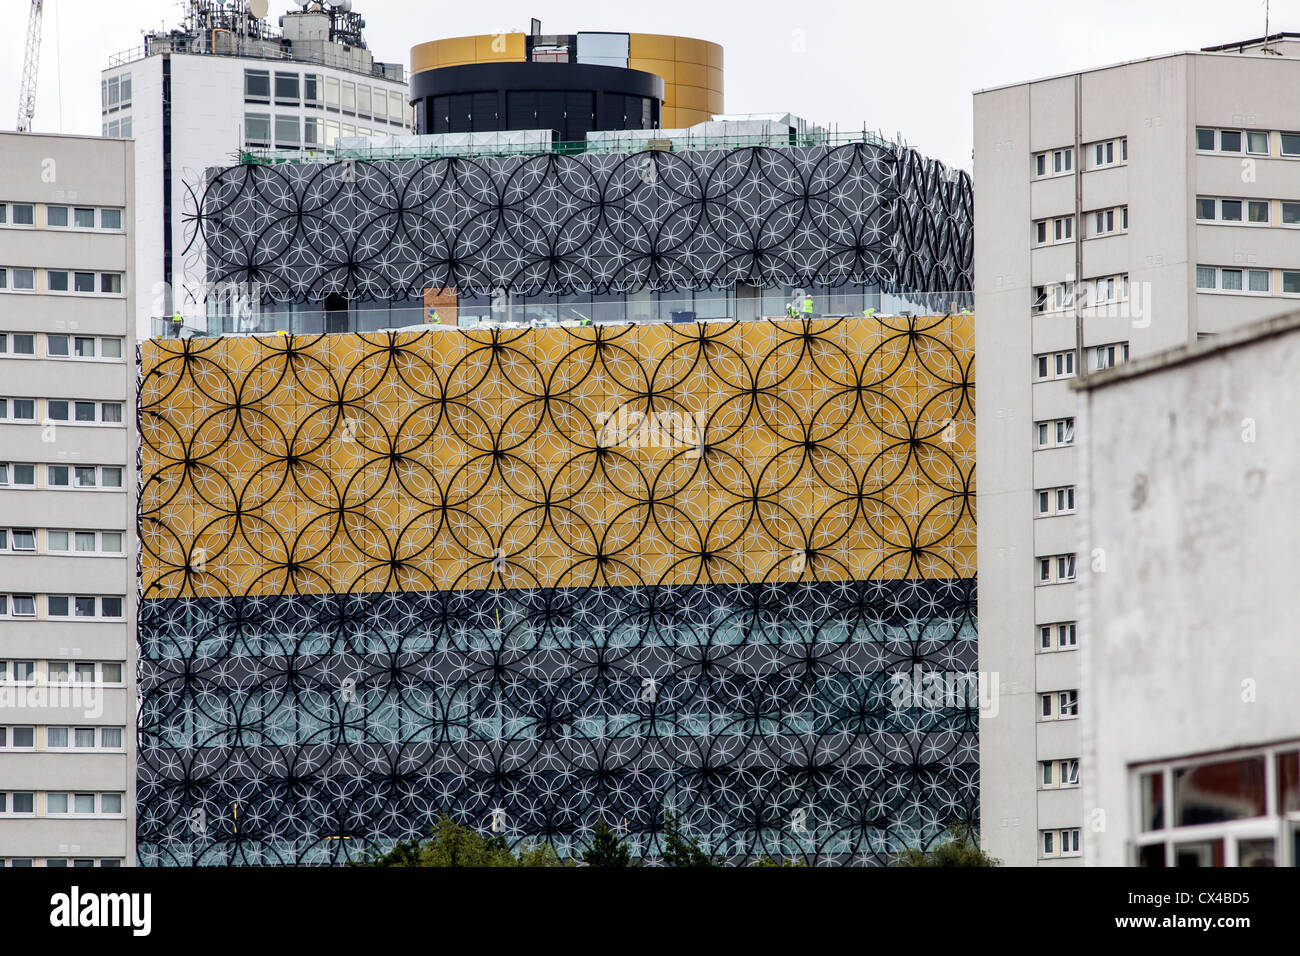 The newly built Library of Birmingham designed by architects Mecanoo.  Gold and filigree cladding covers the building. - Stock Image